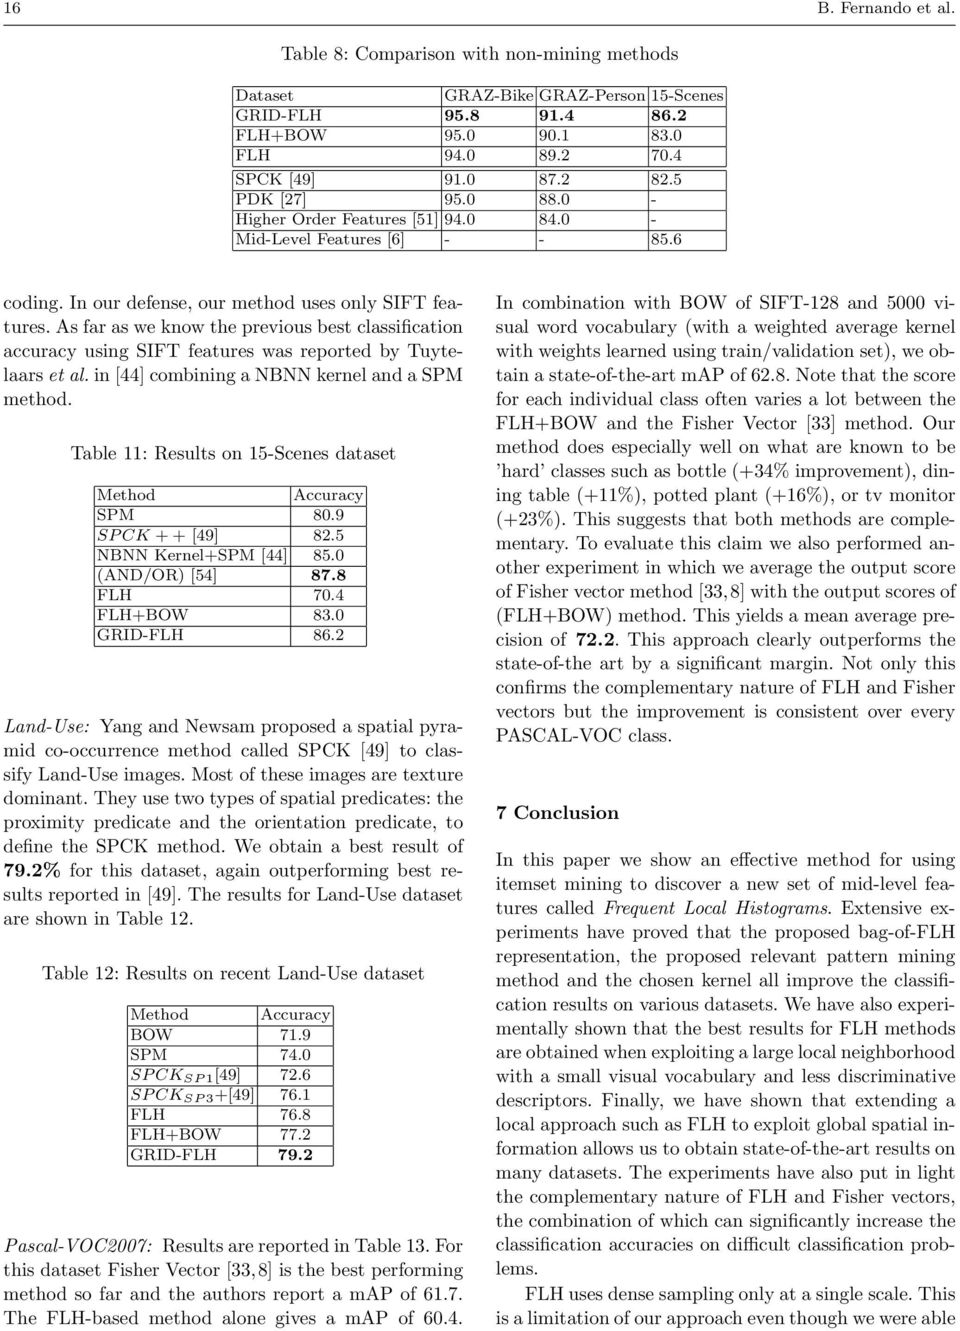 As far as we know the previous best classification accuracy using SIFT features was reported by Tuytelaars et al. in [44] combining a NBNN kernel and a SPM method.